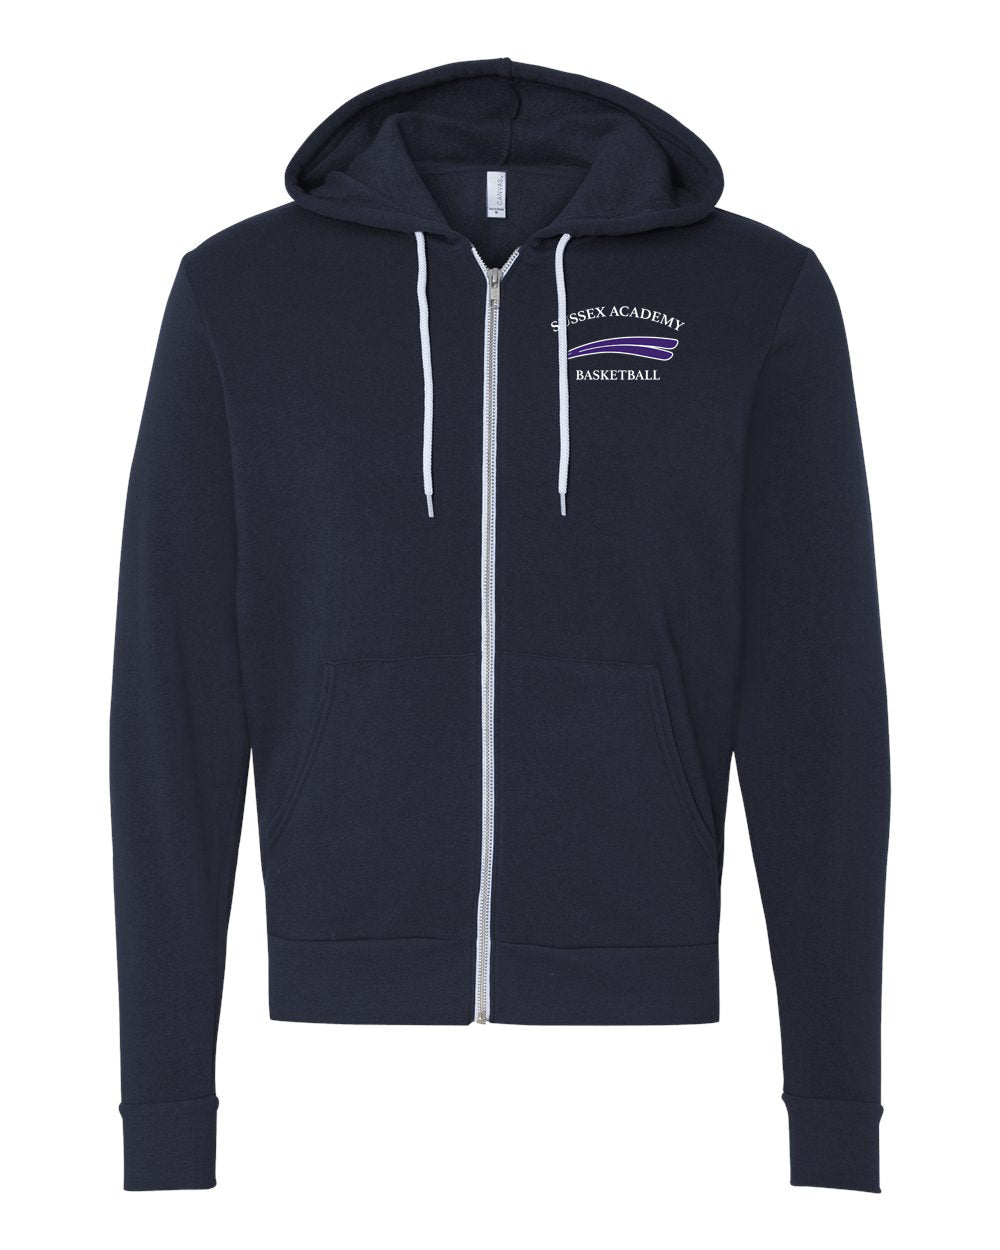 Bella+Canvas - Full-Zip Hooded Sweatshirt (ADULT)